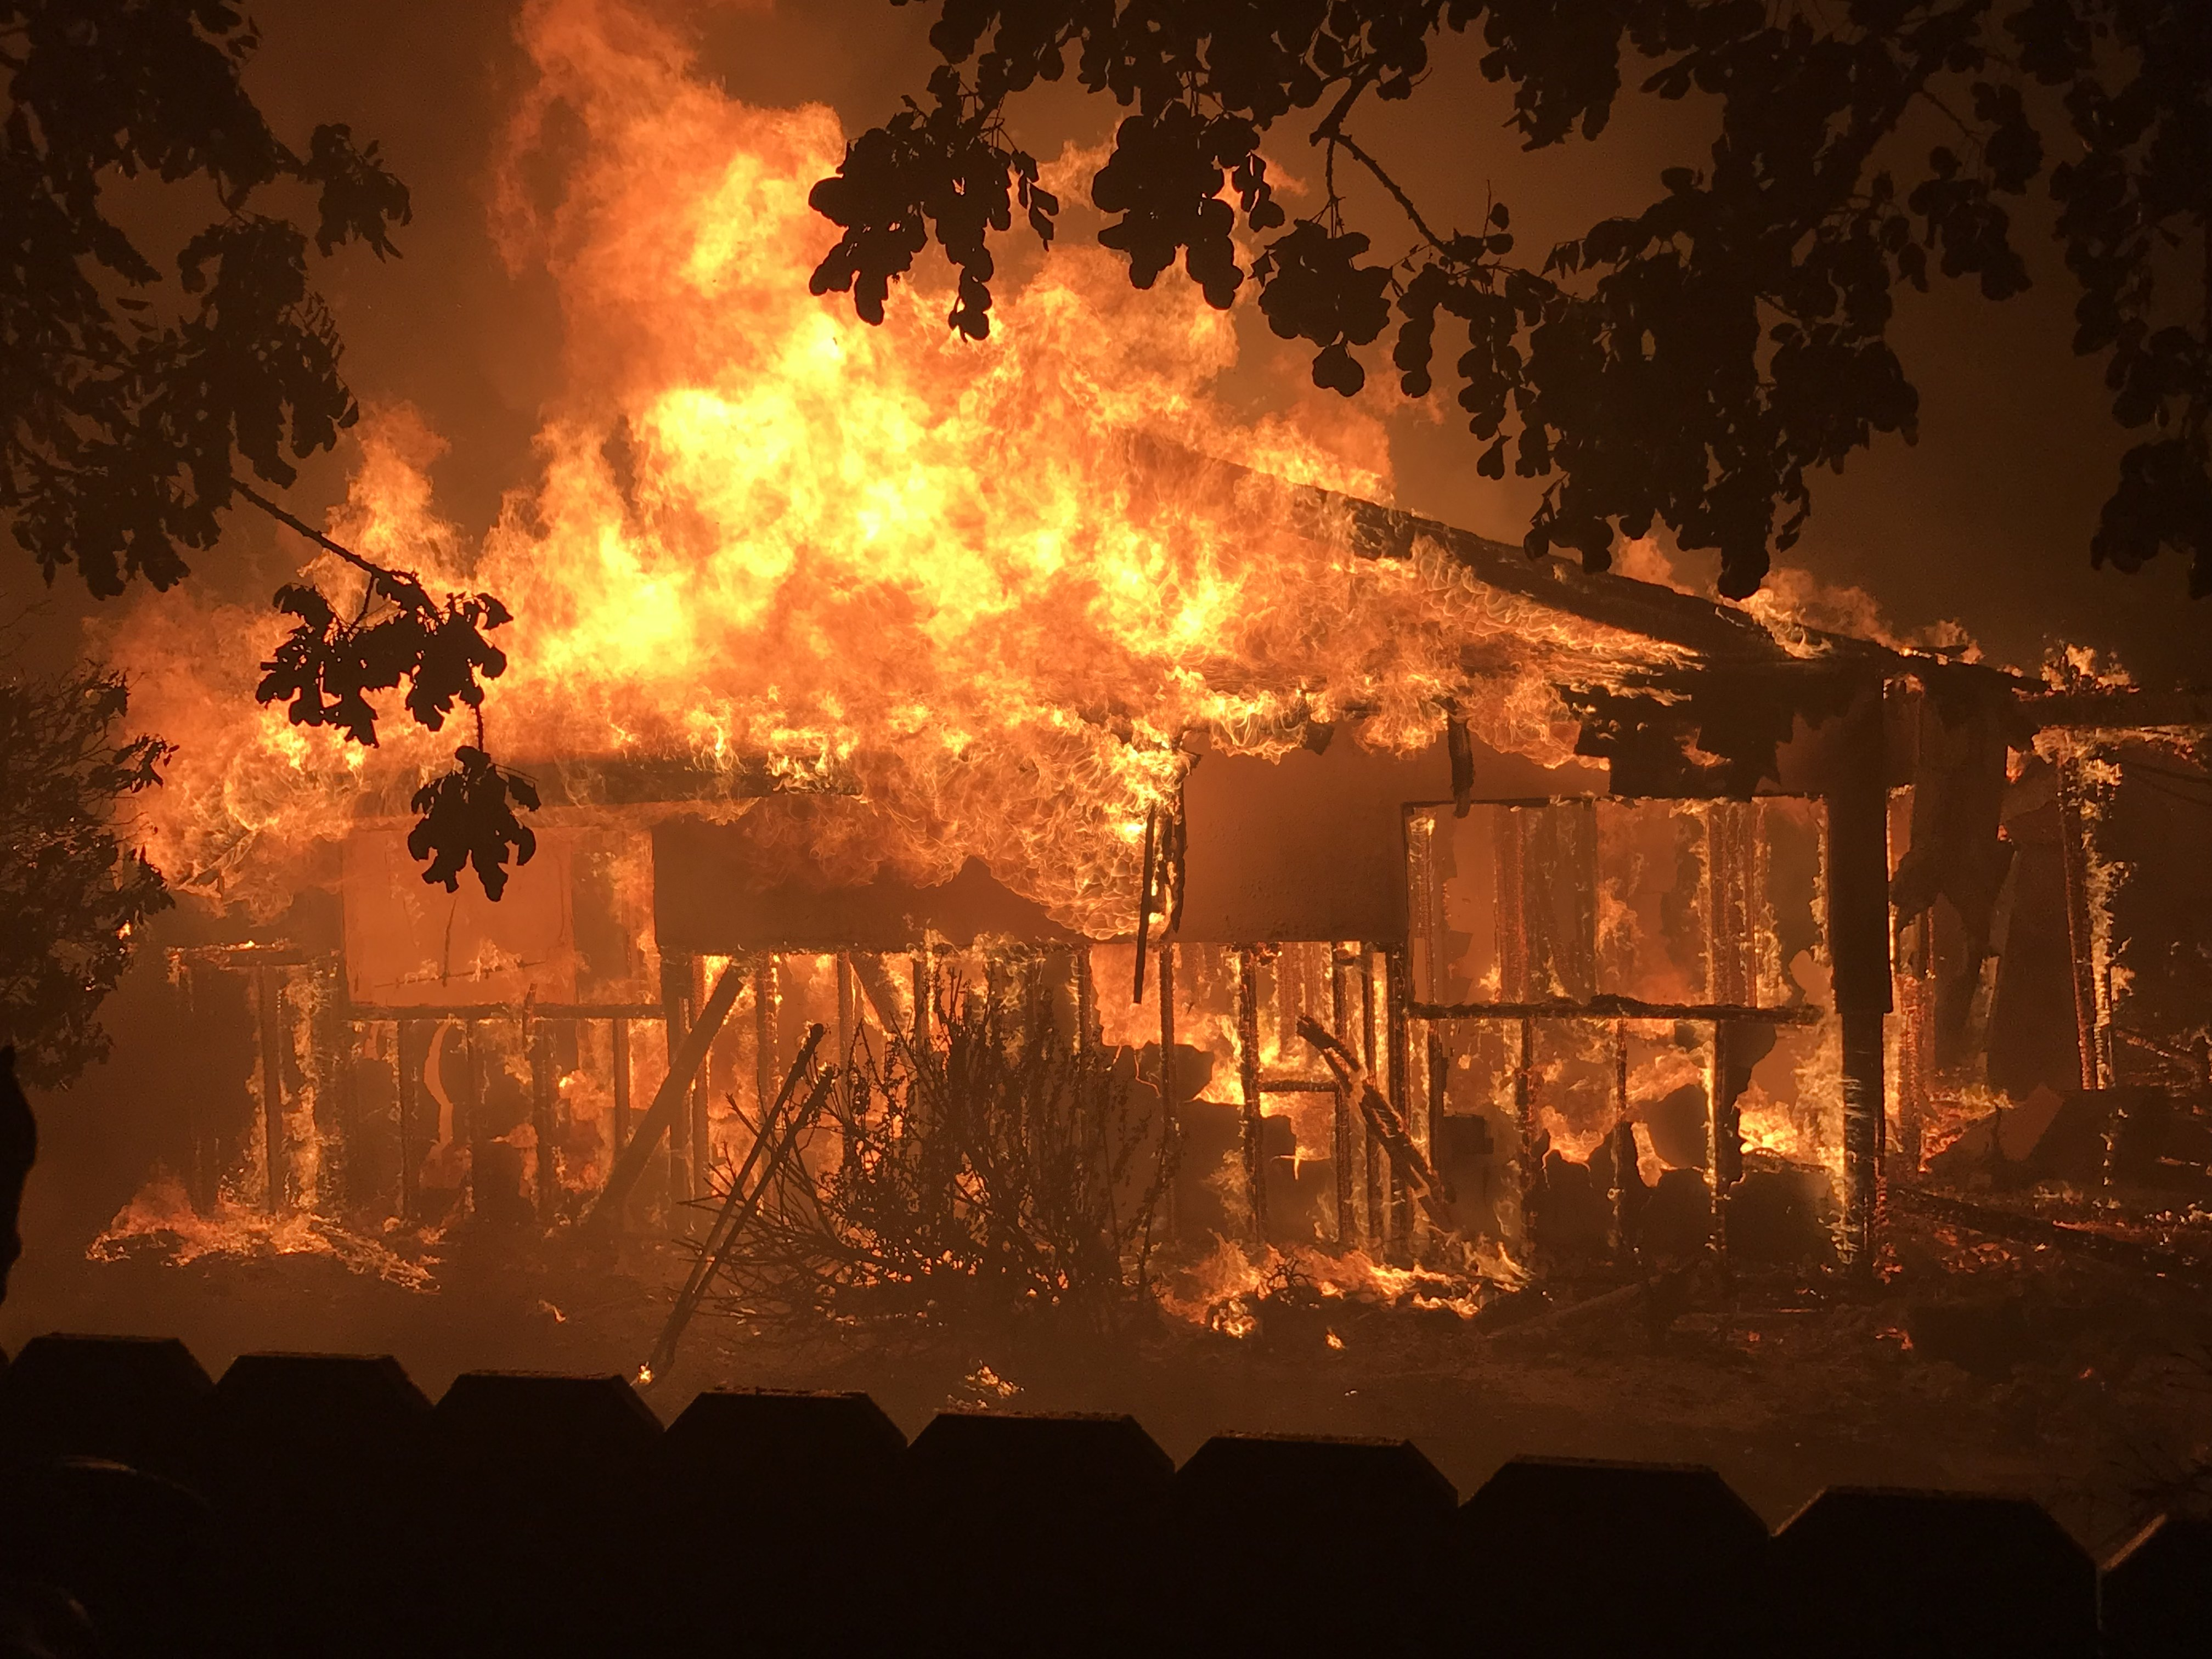 Fires are burning in Goleta, San Diego and San Bernardino in Southern California. Jeff Zimmerman of Neenach sent this image of a Goleta home ablaze, along with at least 20 others, at midnight , July 6.